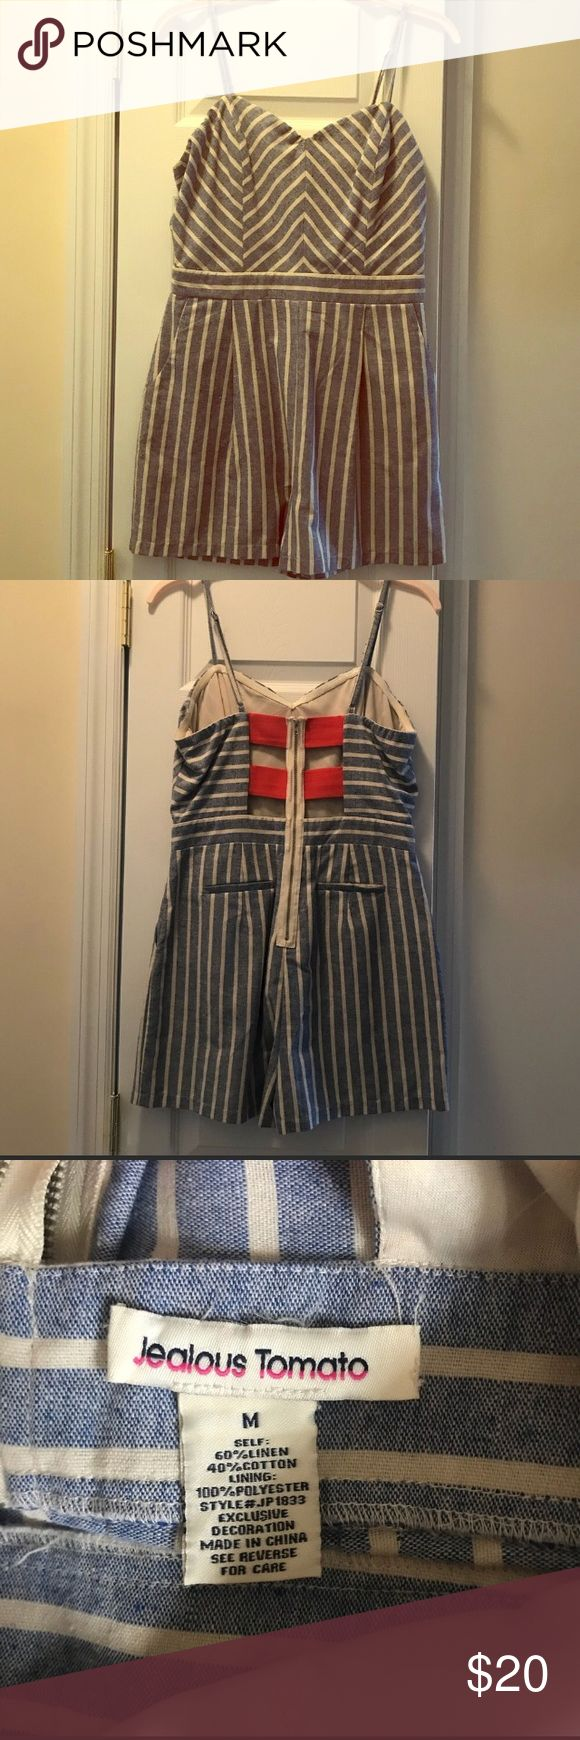 Striped denim romper Adorable striped denim romper, very flattering on and coral striped details on the back. Can be worn both casual or dressed up with the right wedges. Only worn couple of times and in great condition. Size M fits true to size. Got this in a little boutique in Sarasota, FL. jealous tomato Other